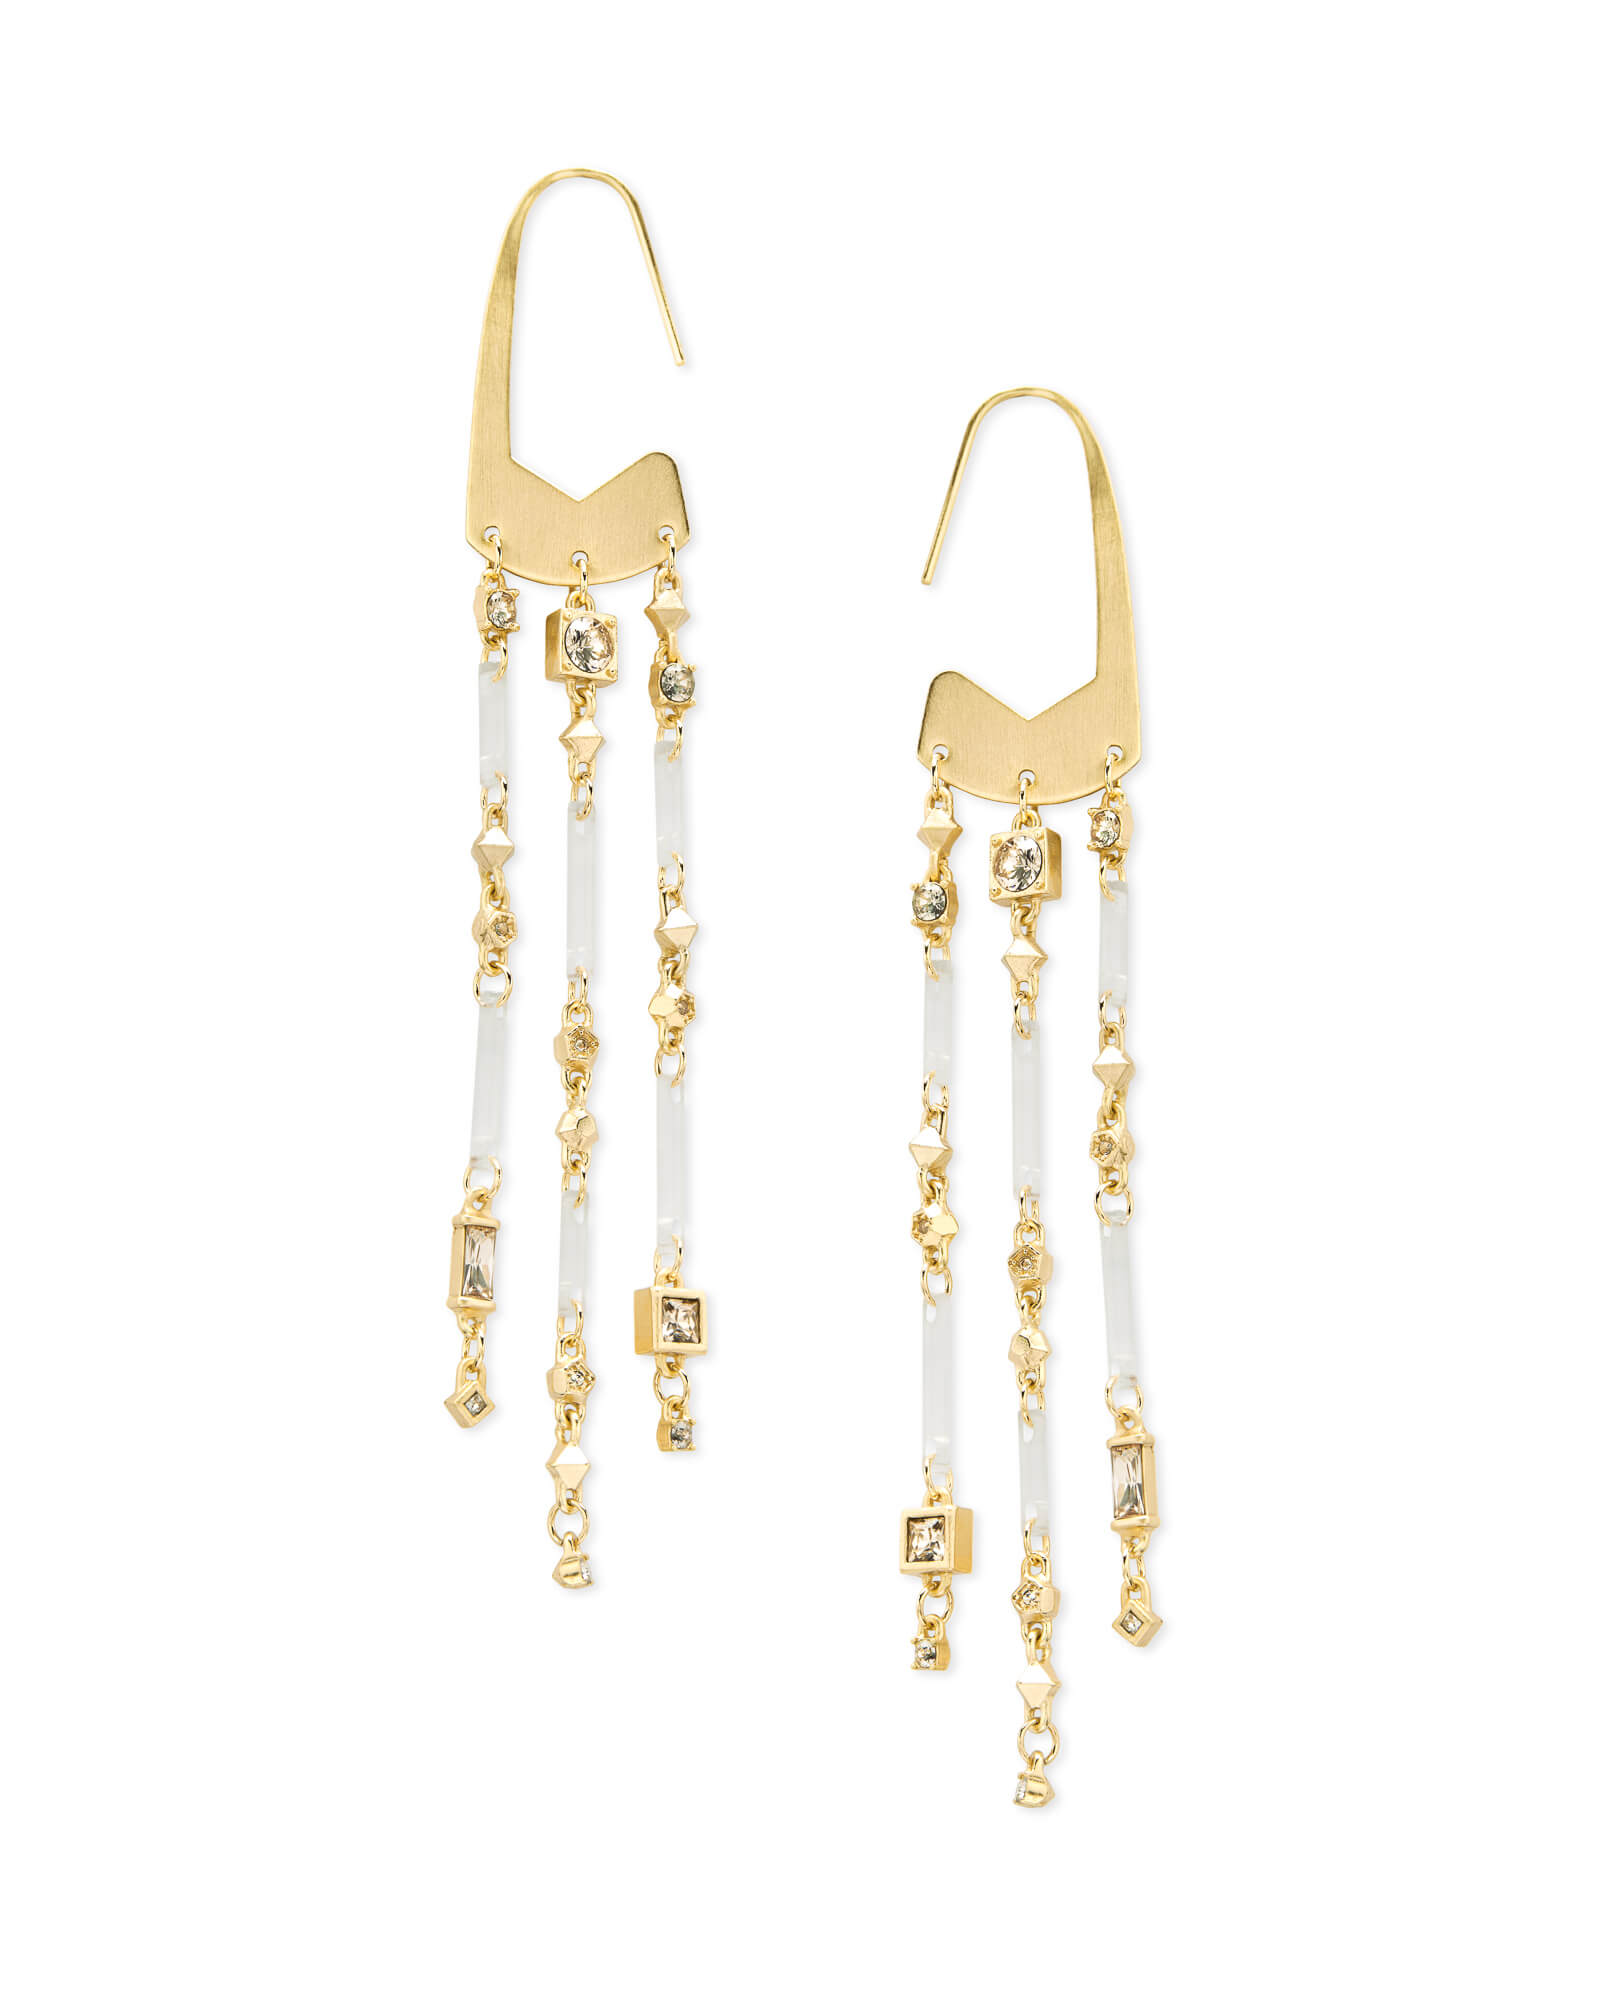 Corza Gold Statement Earrings in Smoky Mix